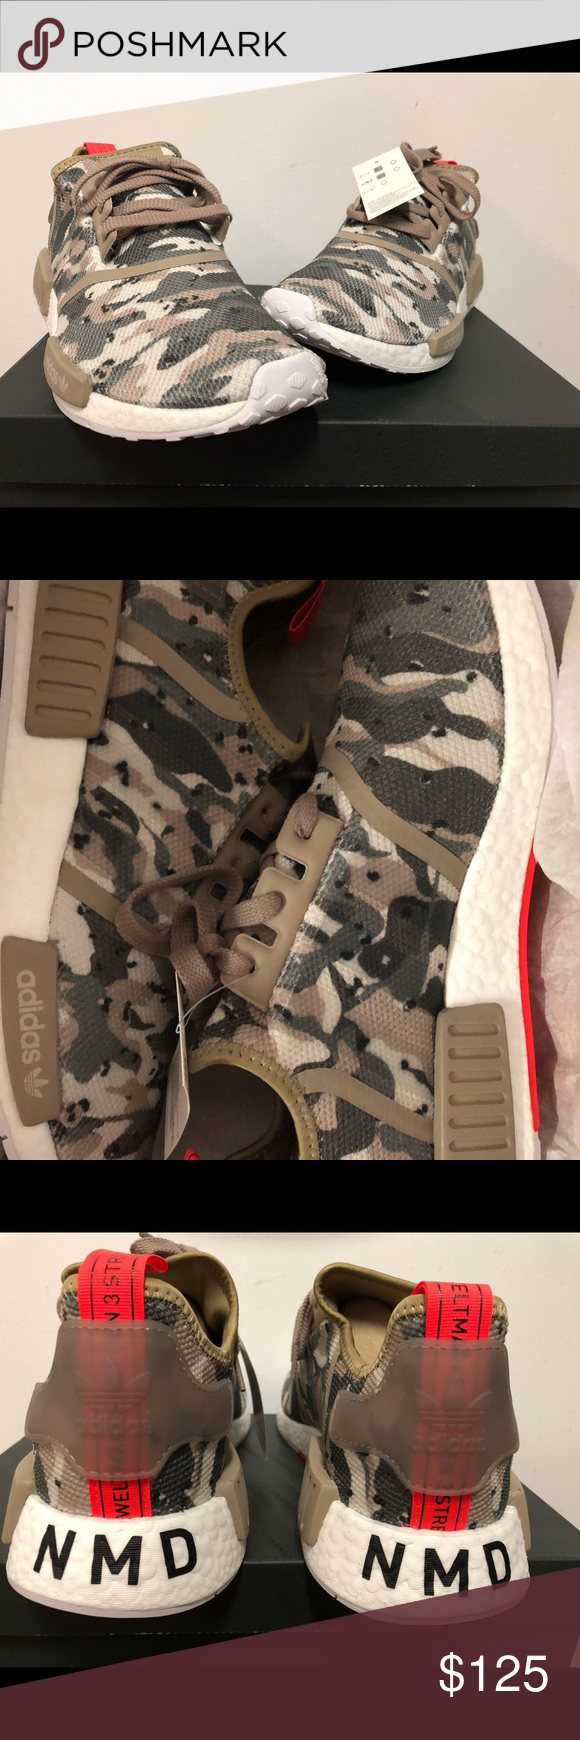 "de5a29663 adidas Originals NMD R1 ""Brown Camo"" G27915 100% brand new and deadstock  Come with original box adidas Shoes Sneakers"